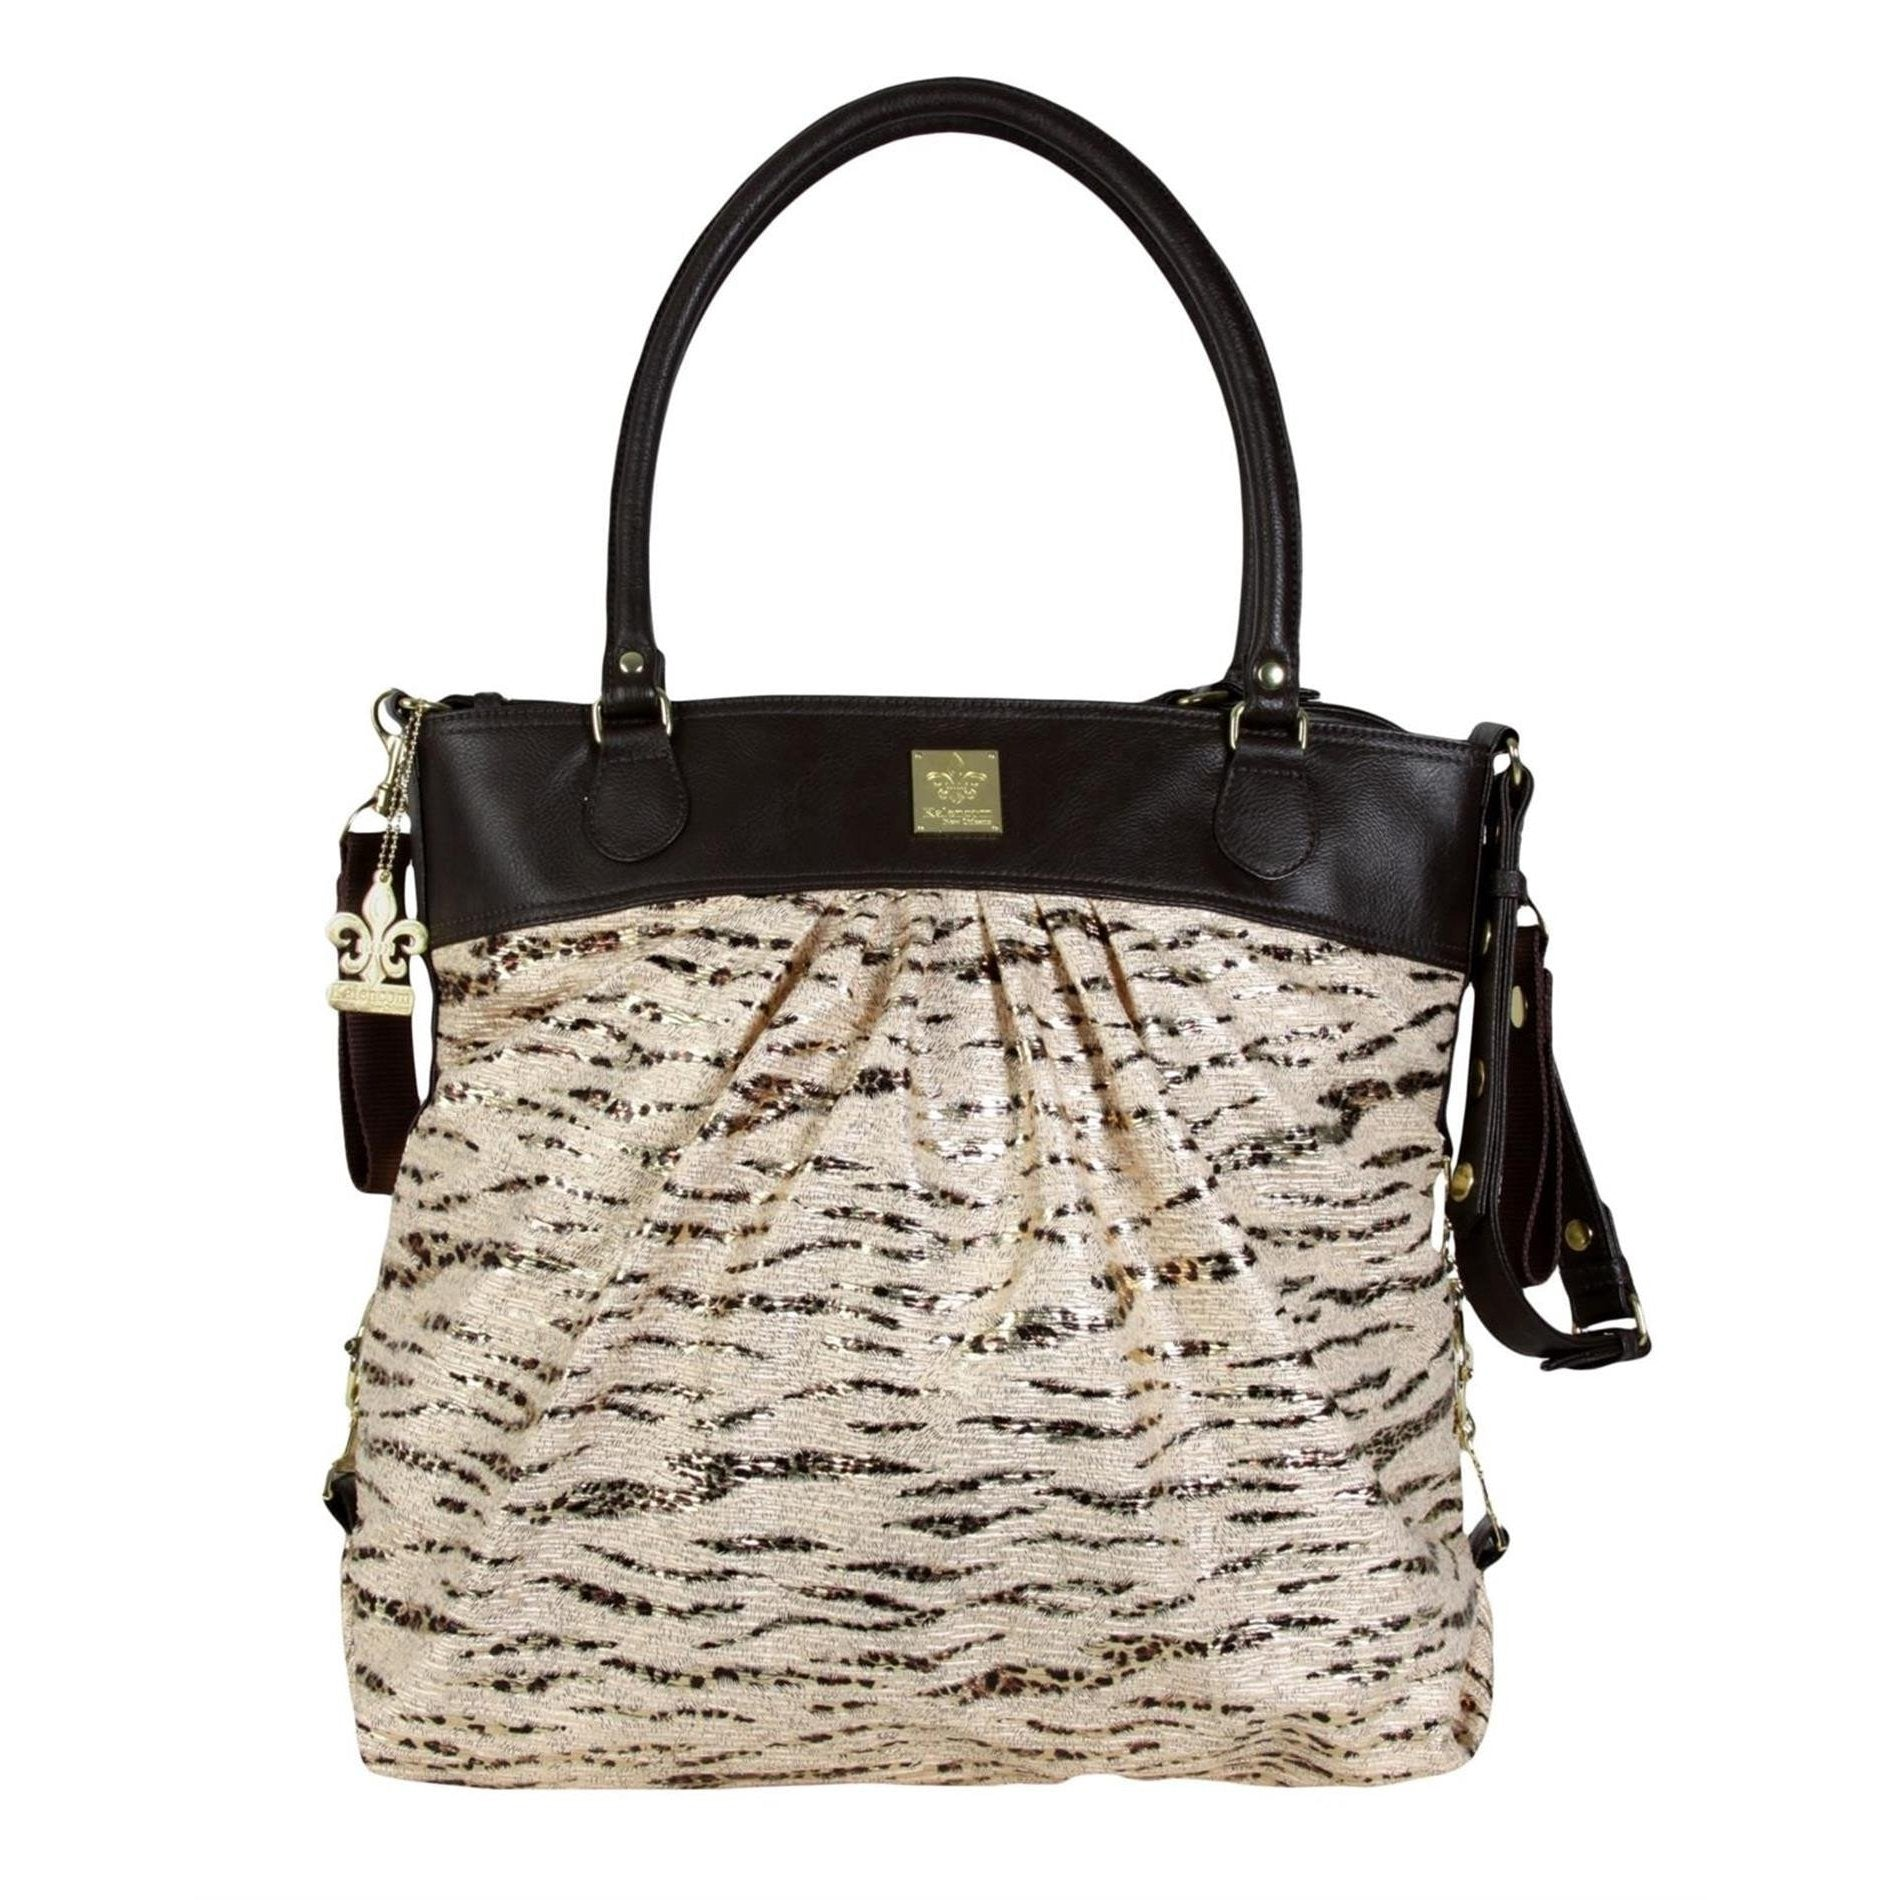 Namibia City Slick - On The Wild Side Diaper Bag | Style 2918 - Kalencom-Diaper Bags-Default-Jack and Jill Boutique